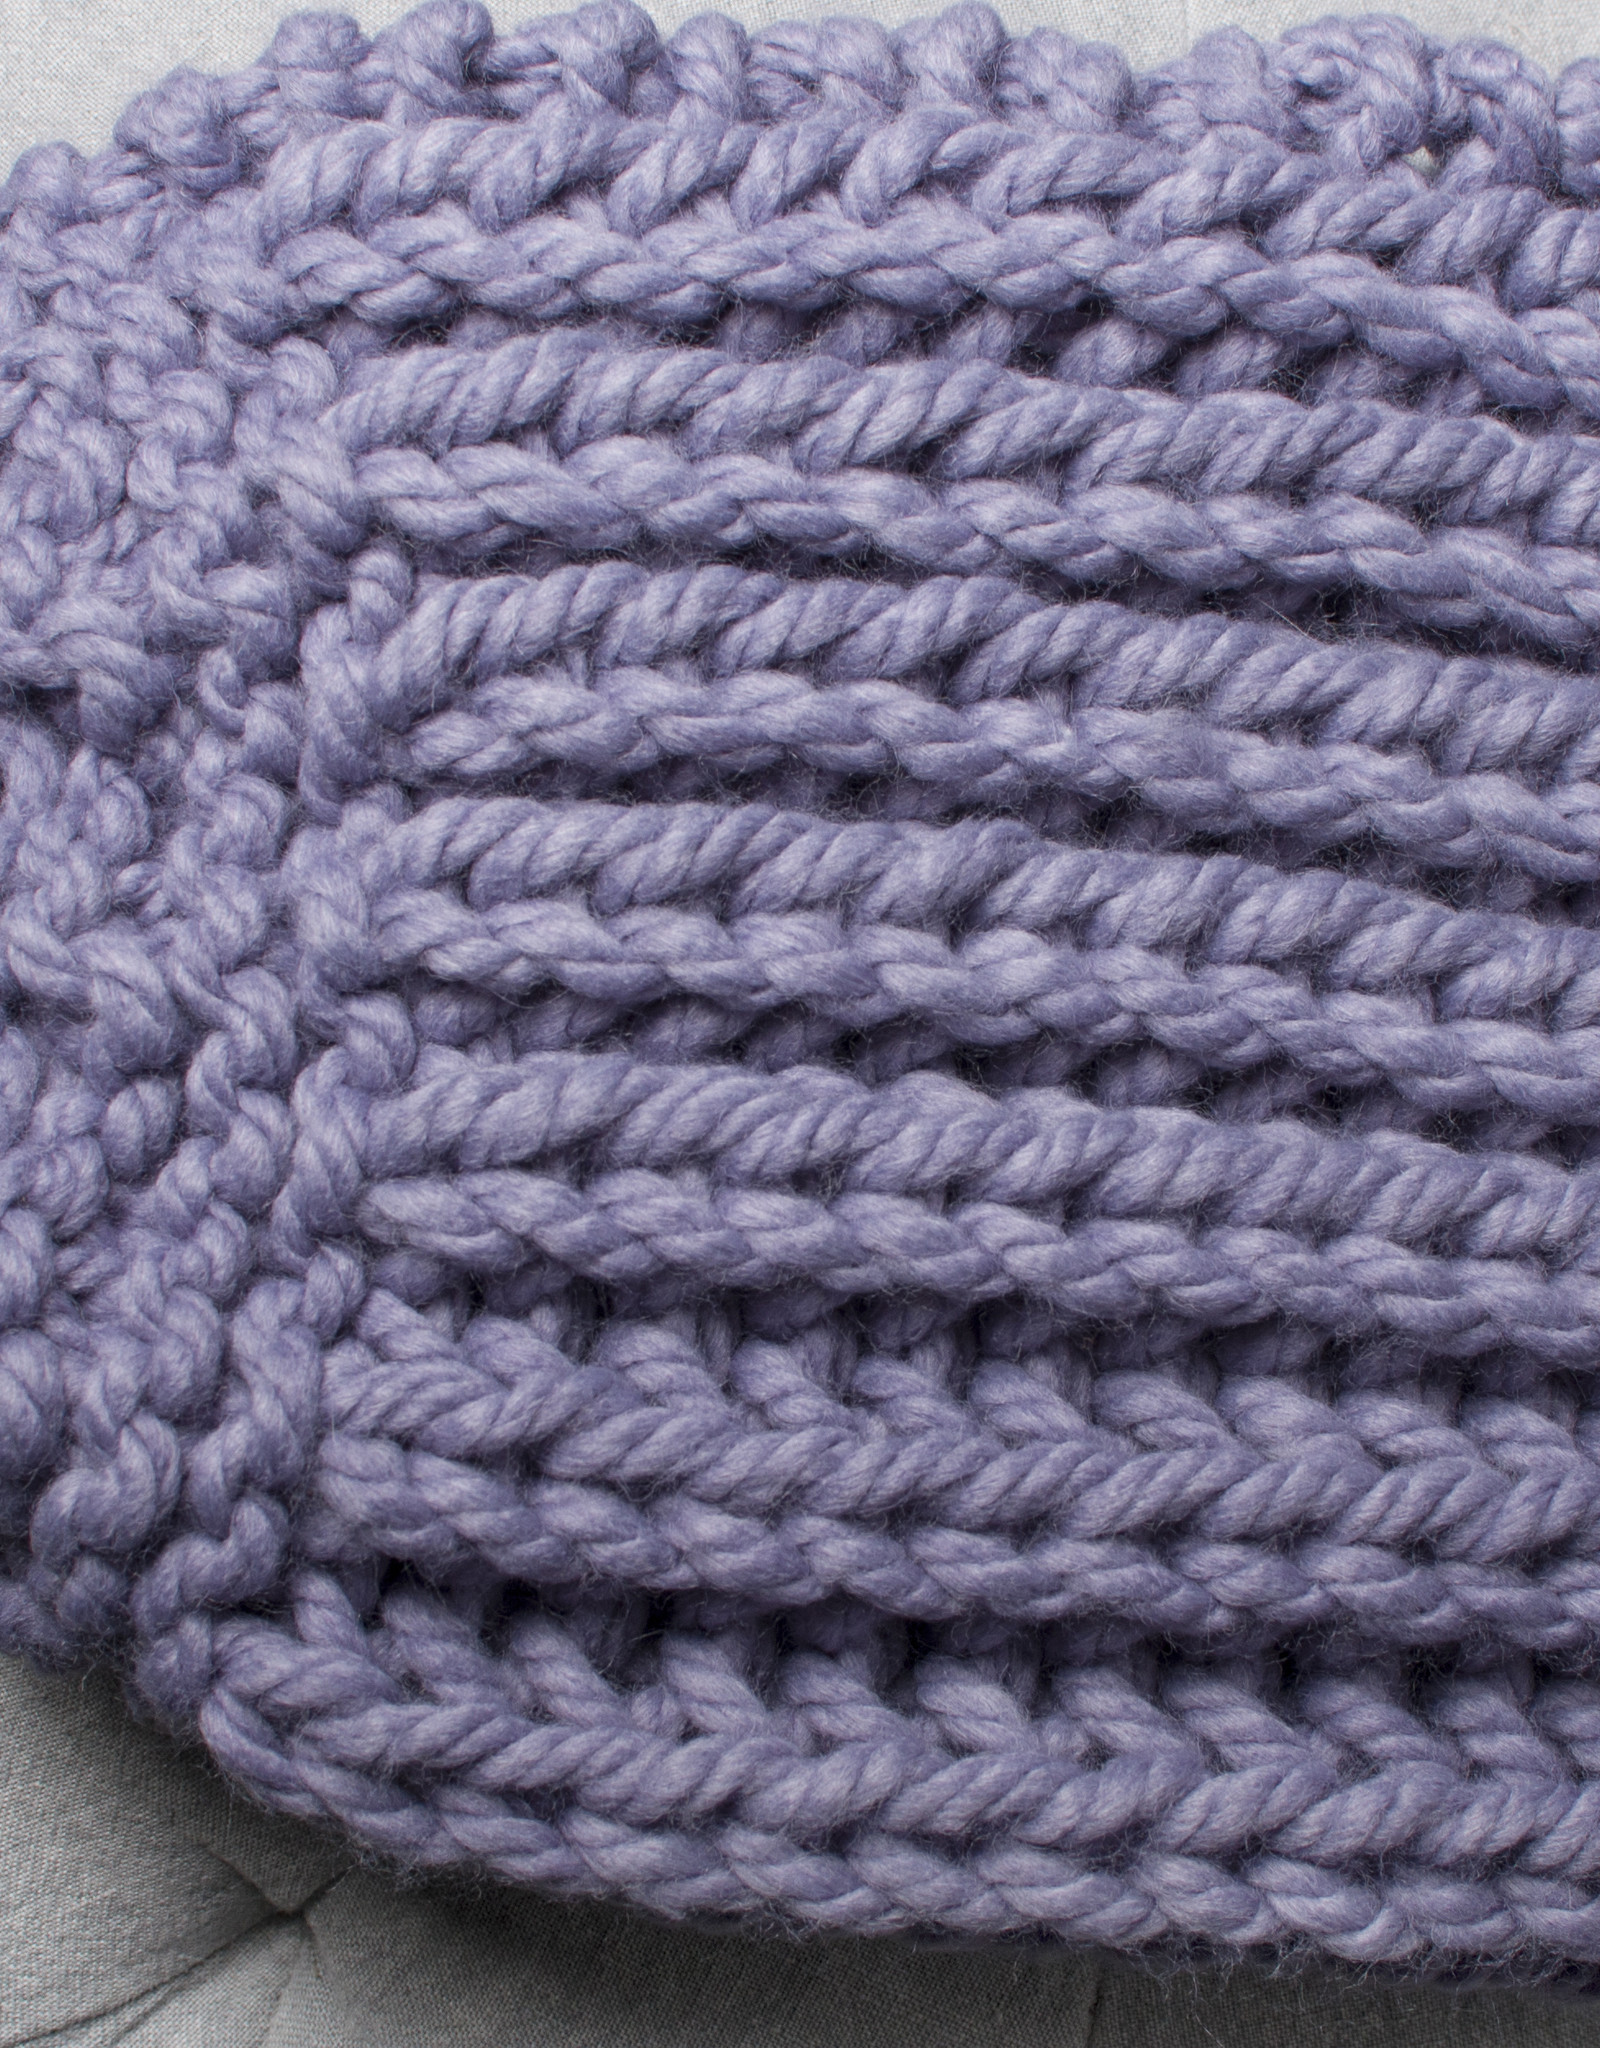 Angels-Knit by FDF 100% handmade Marie - violet